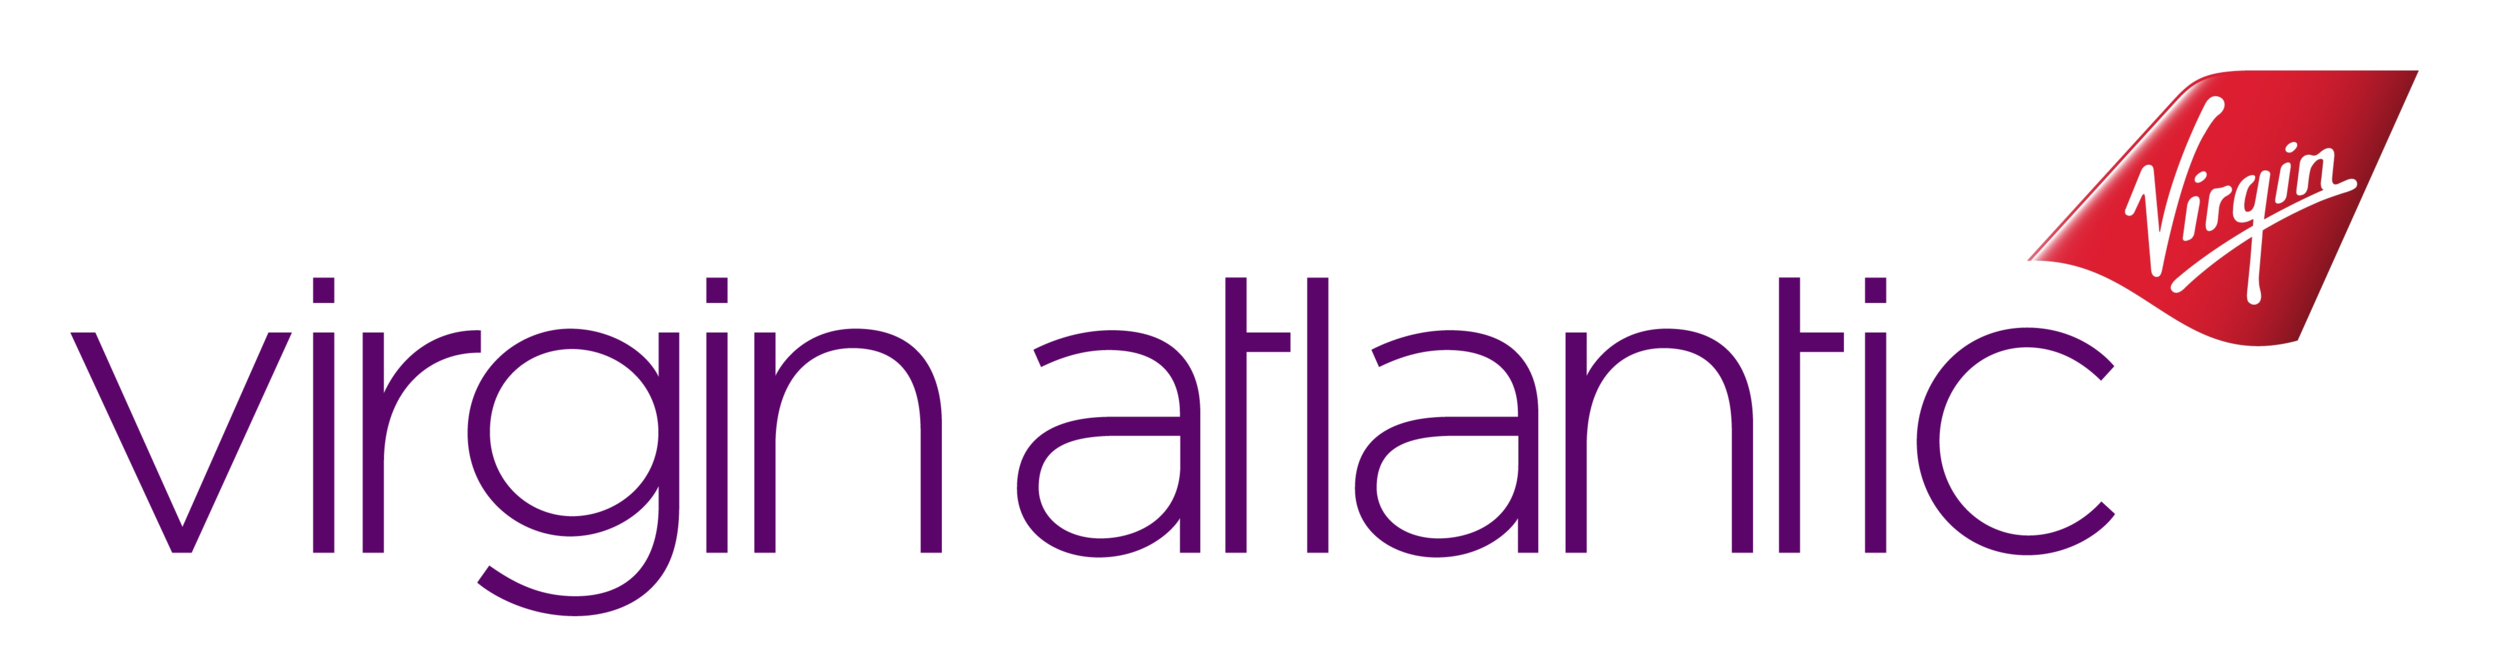 virgin-atlantic-logo-png-virgin-atlantic-logo-logotype-4401.png